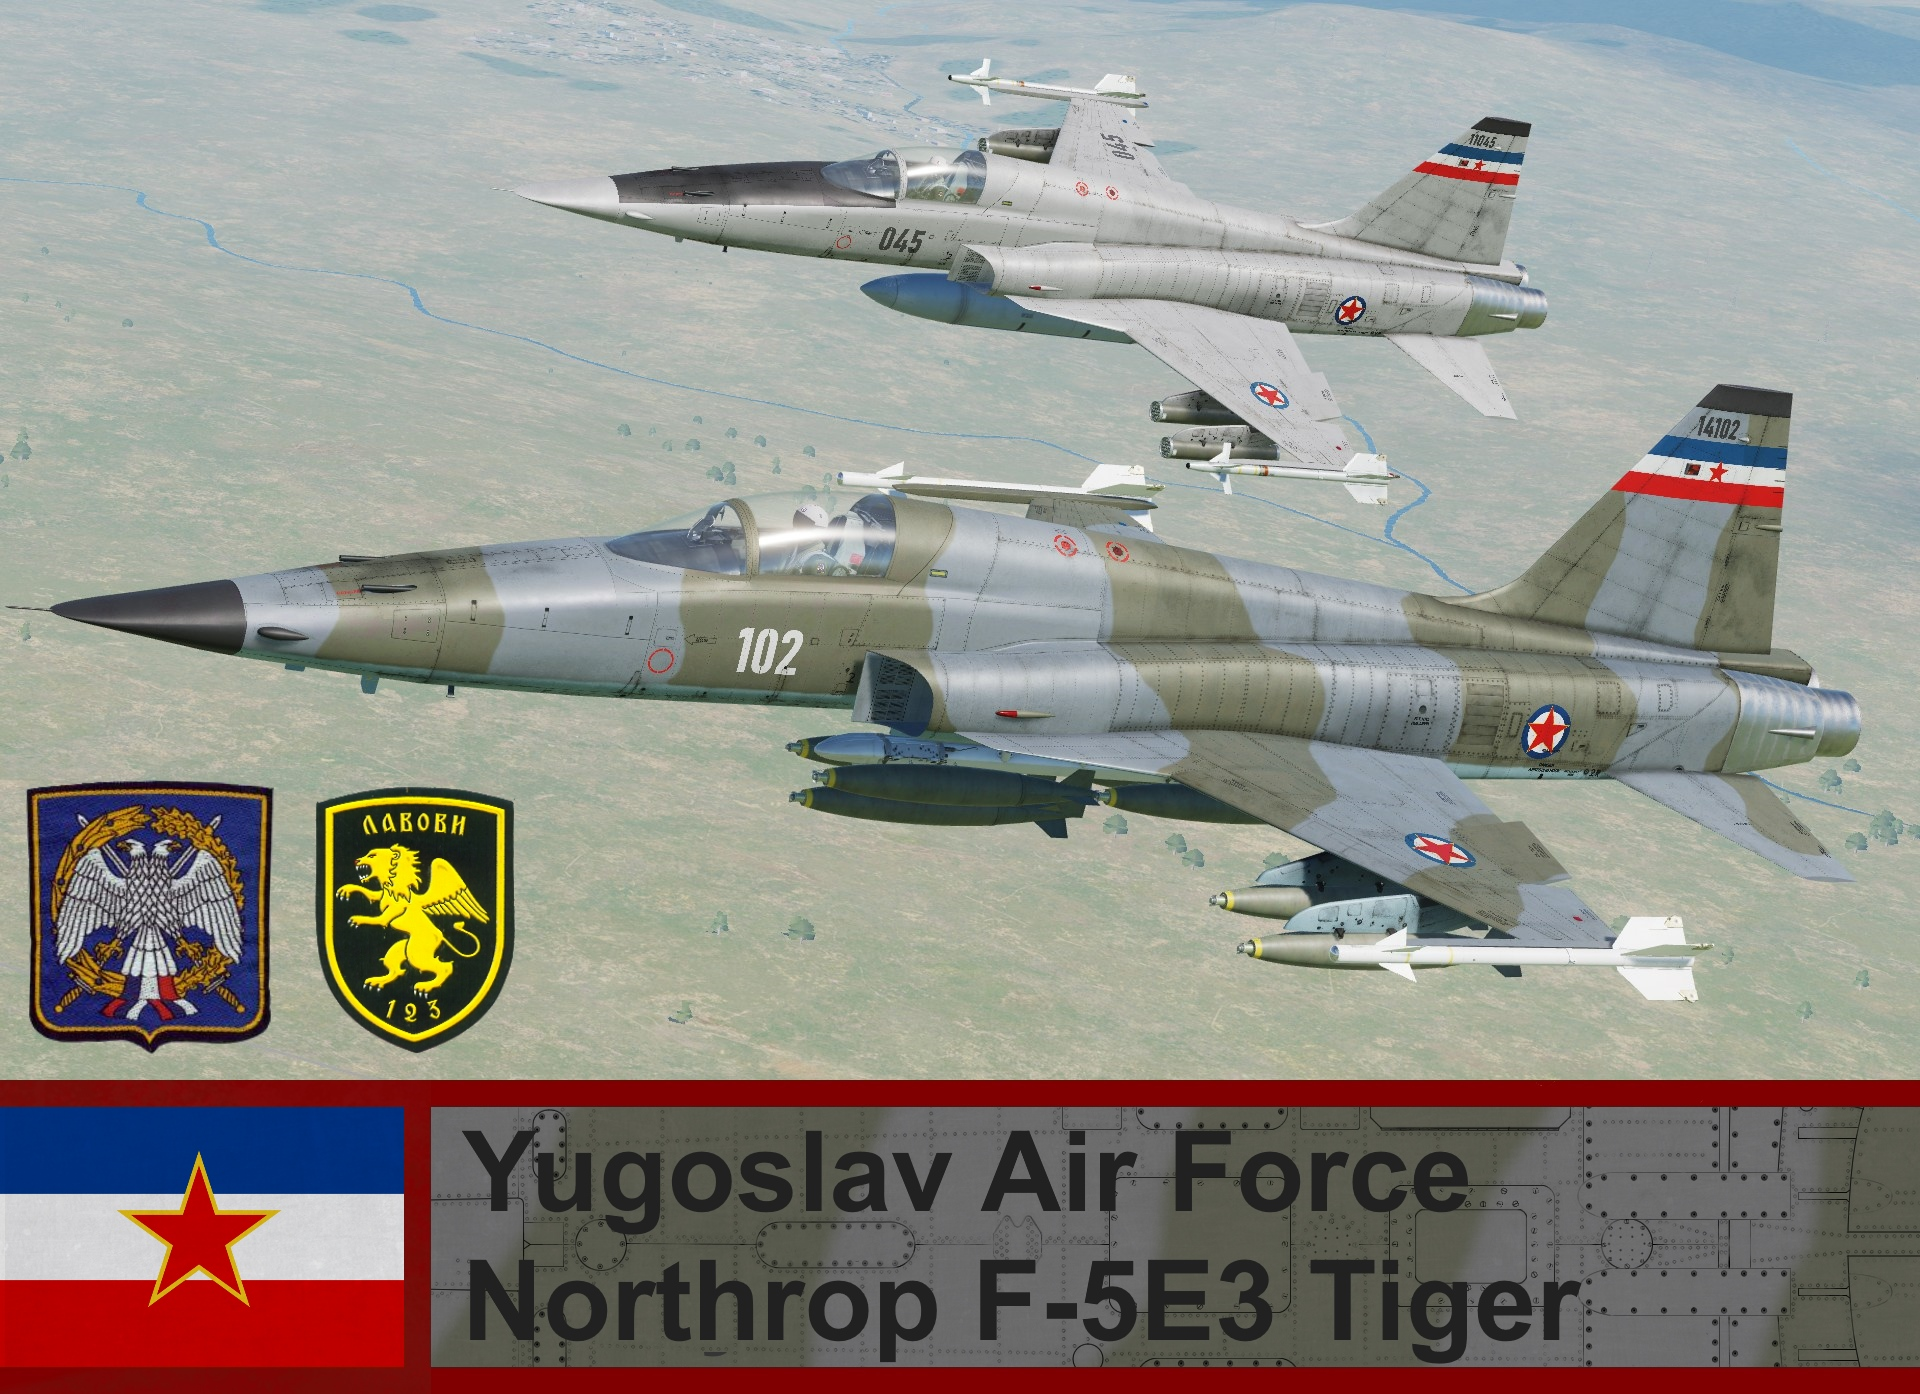 Yugoslav Air Force F-5E3 Tiger (Fictional) 4K